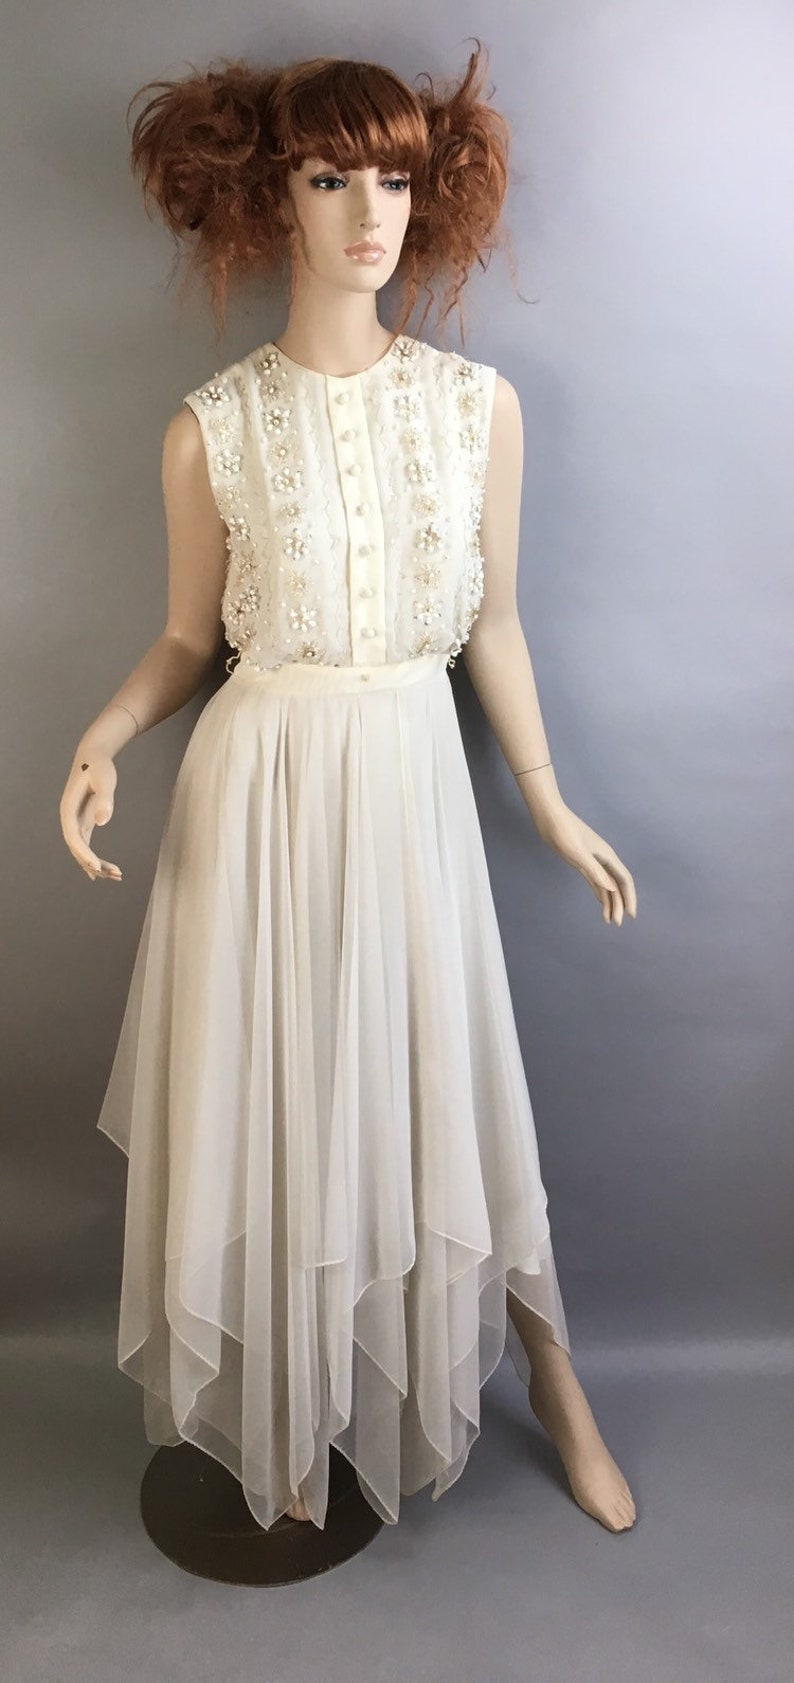 3964b63bc8 Vintage 60s White Dress   Maxi White Beaded Dress   Sequin and